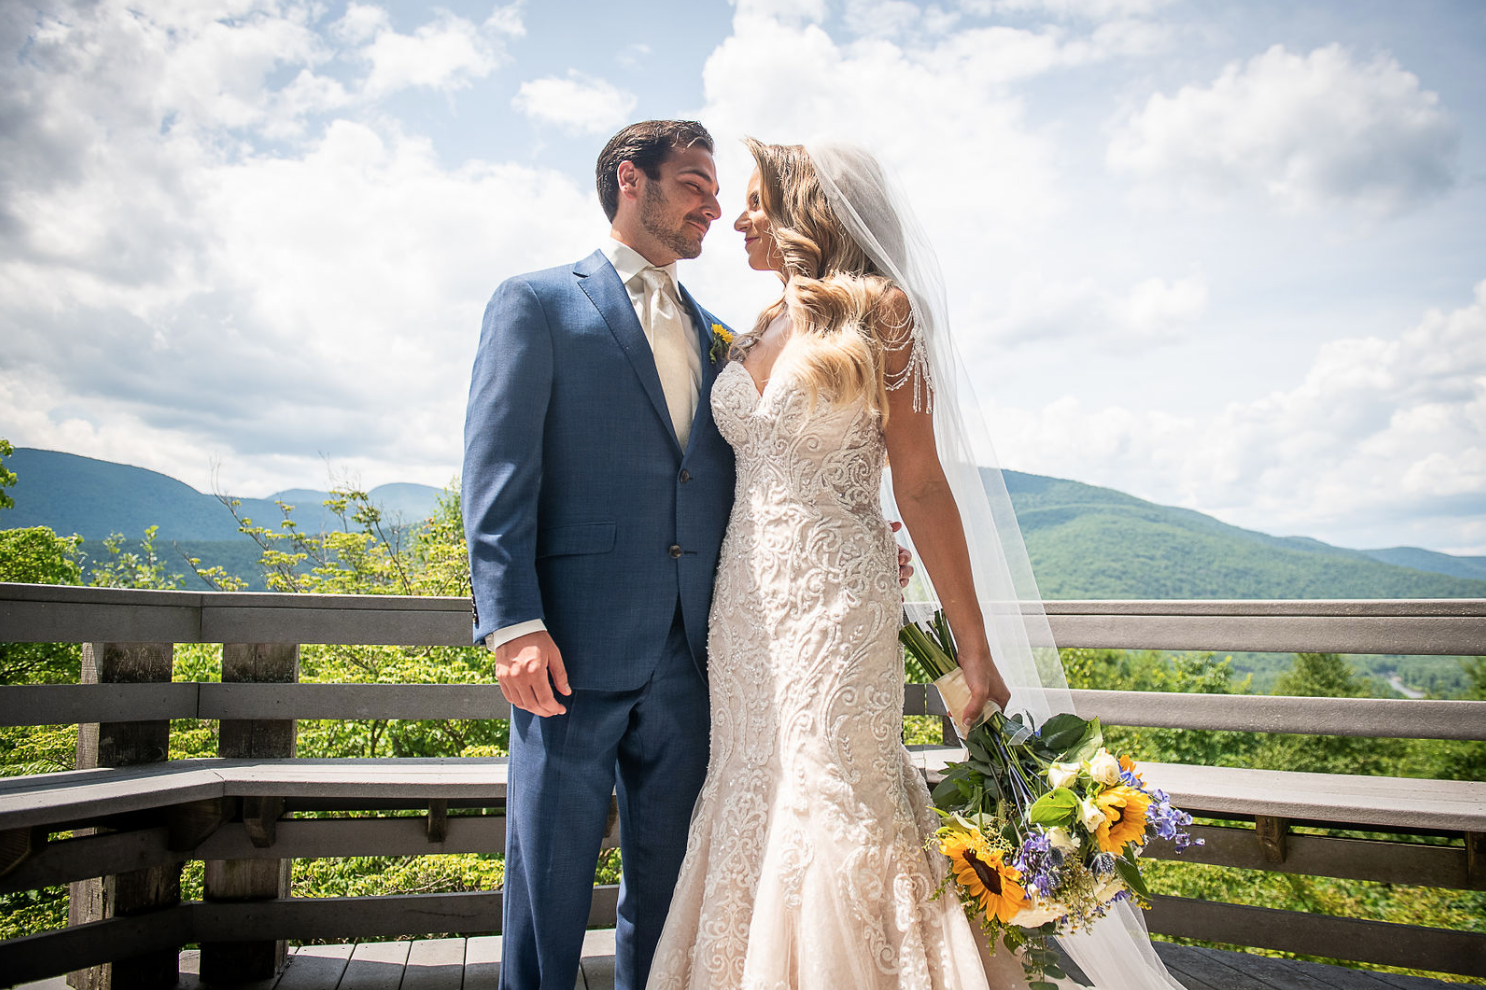 Becky and Blake | Wedding at the Onteora Mountain House